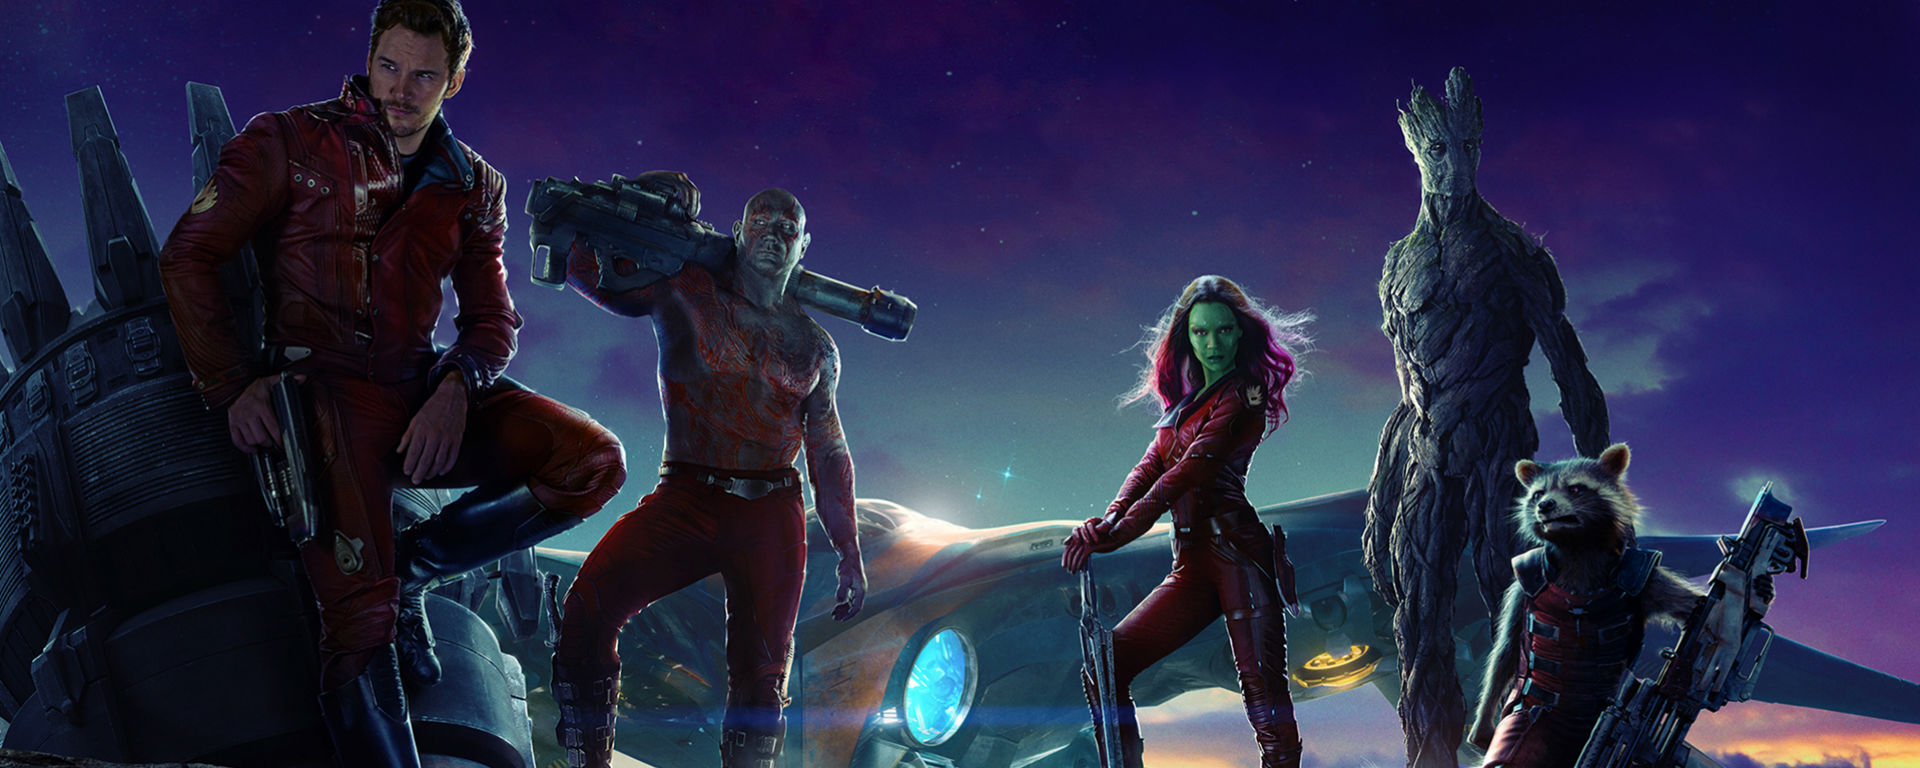 marvel guardians of the galaxy movie review feature image